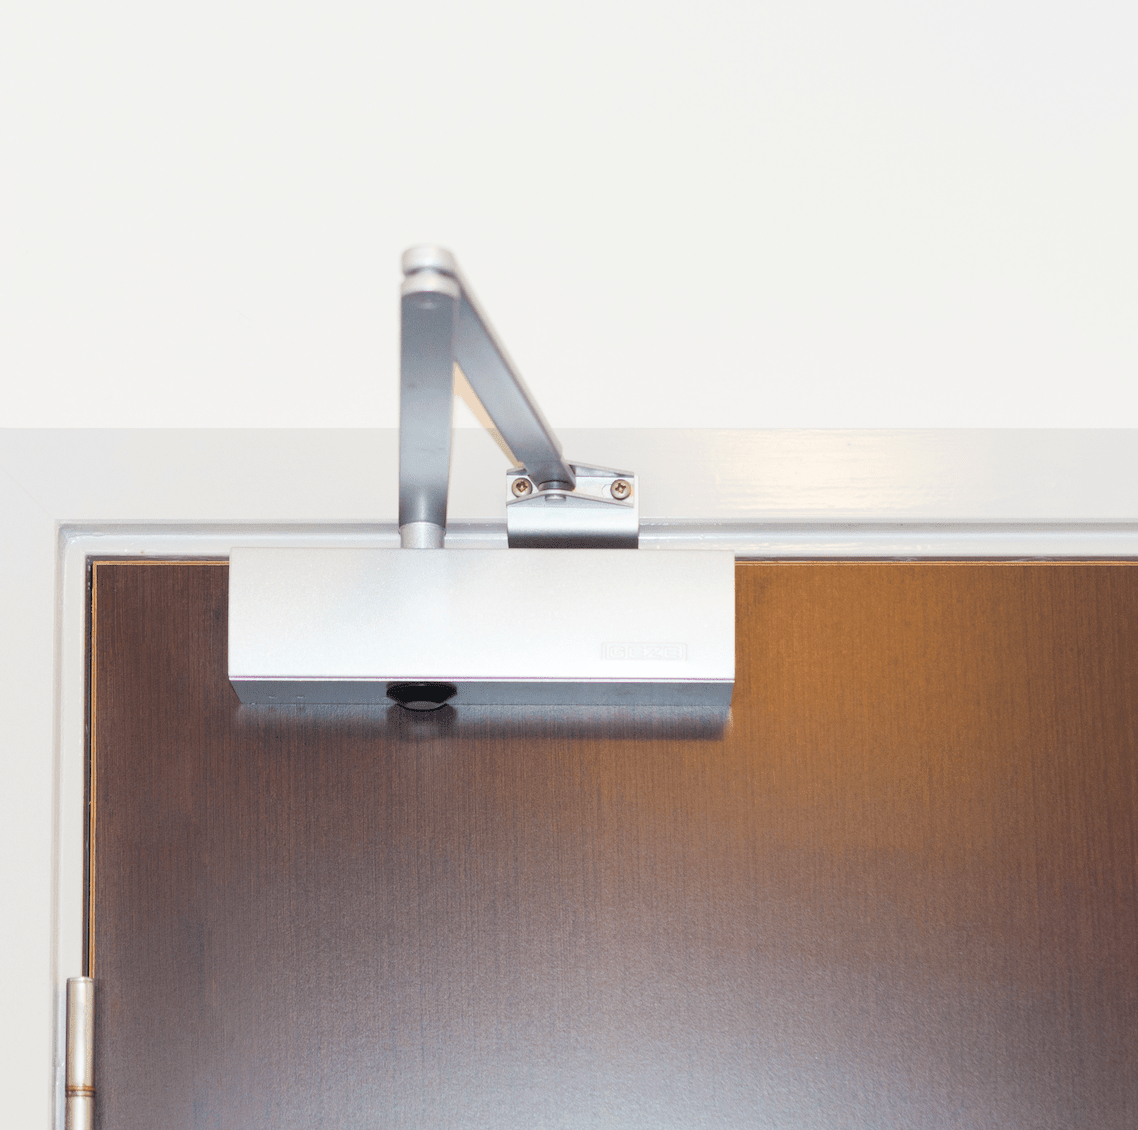 A new door closer installed ready for use in a home.